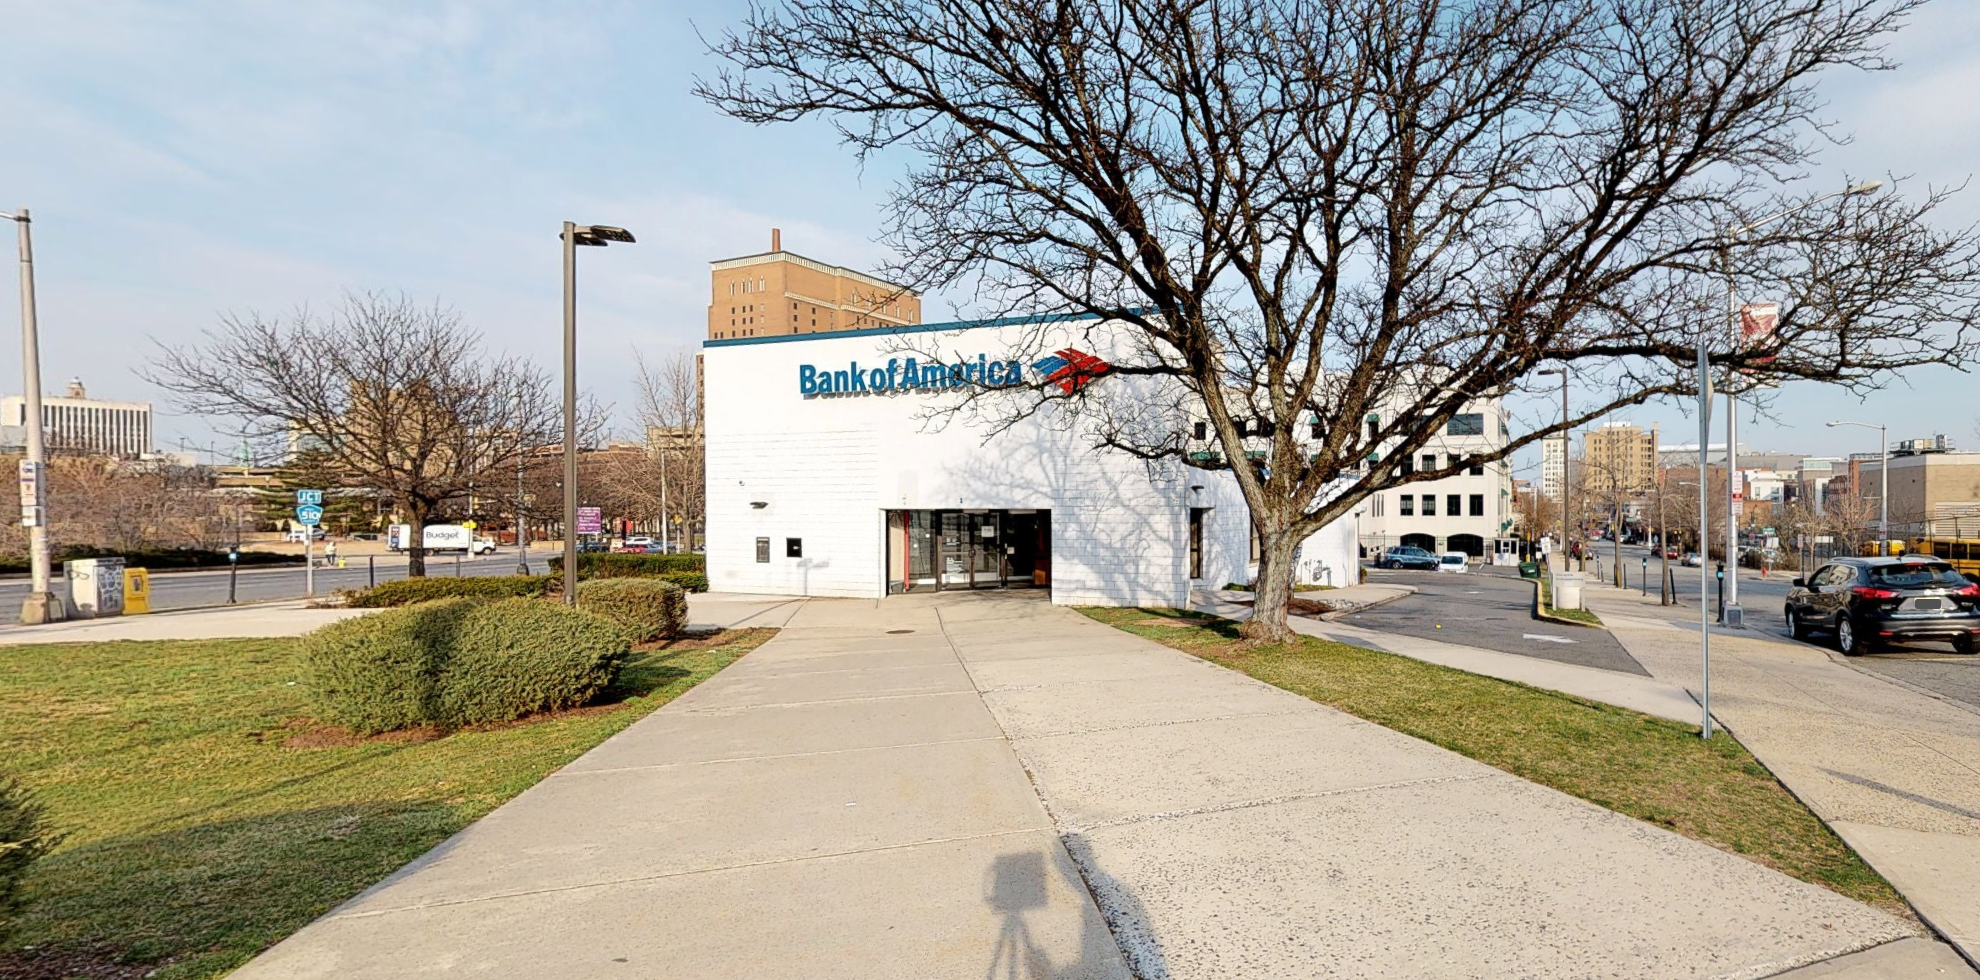 Bank of America financial center with drive-thru ATM | 1 Springfield Ave, Newark, NJ 07102